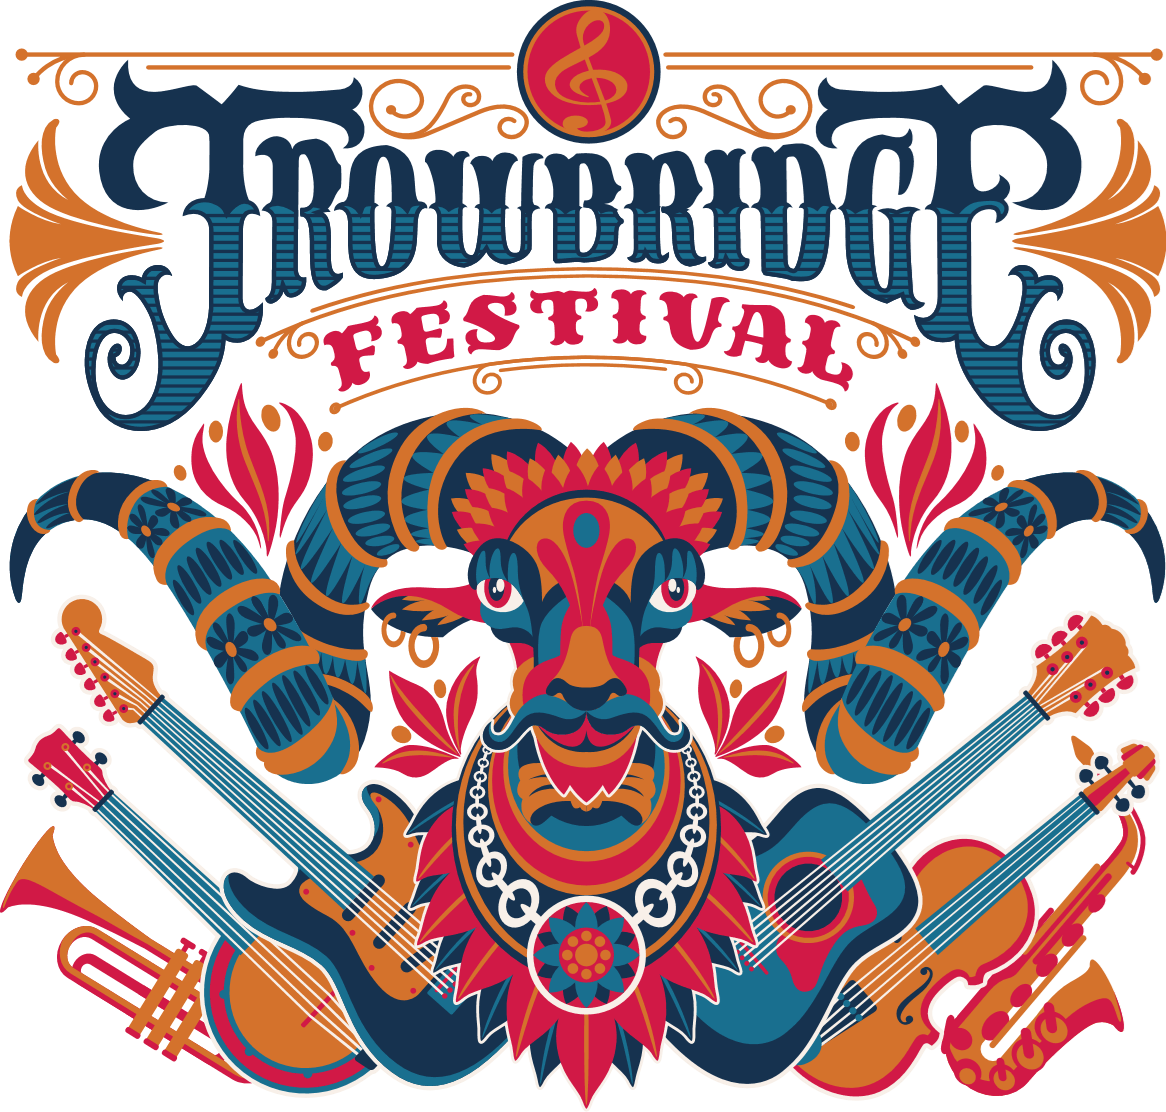 Trowbridge Festival - Trowbridge Festival presents a fun filled value packed weekend of music, July 20th – 22nd 2018